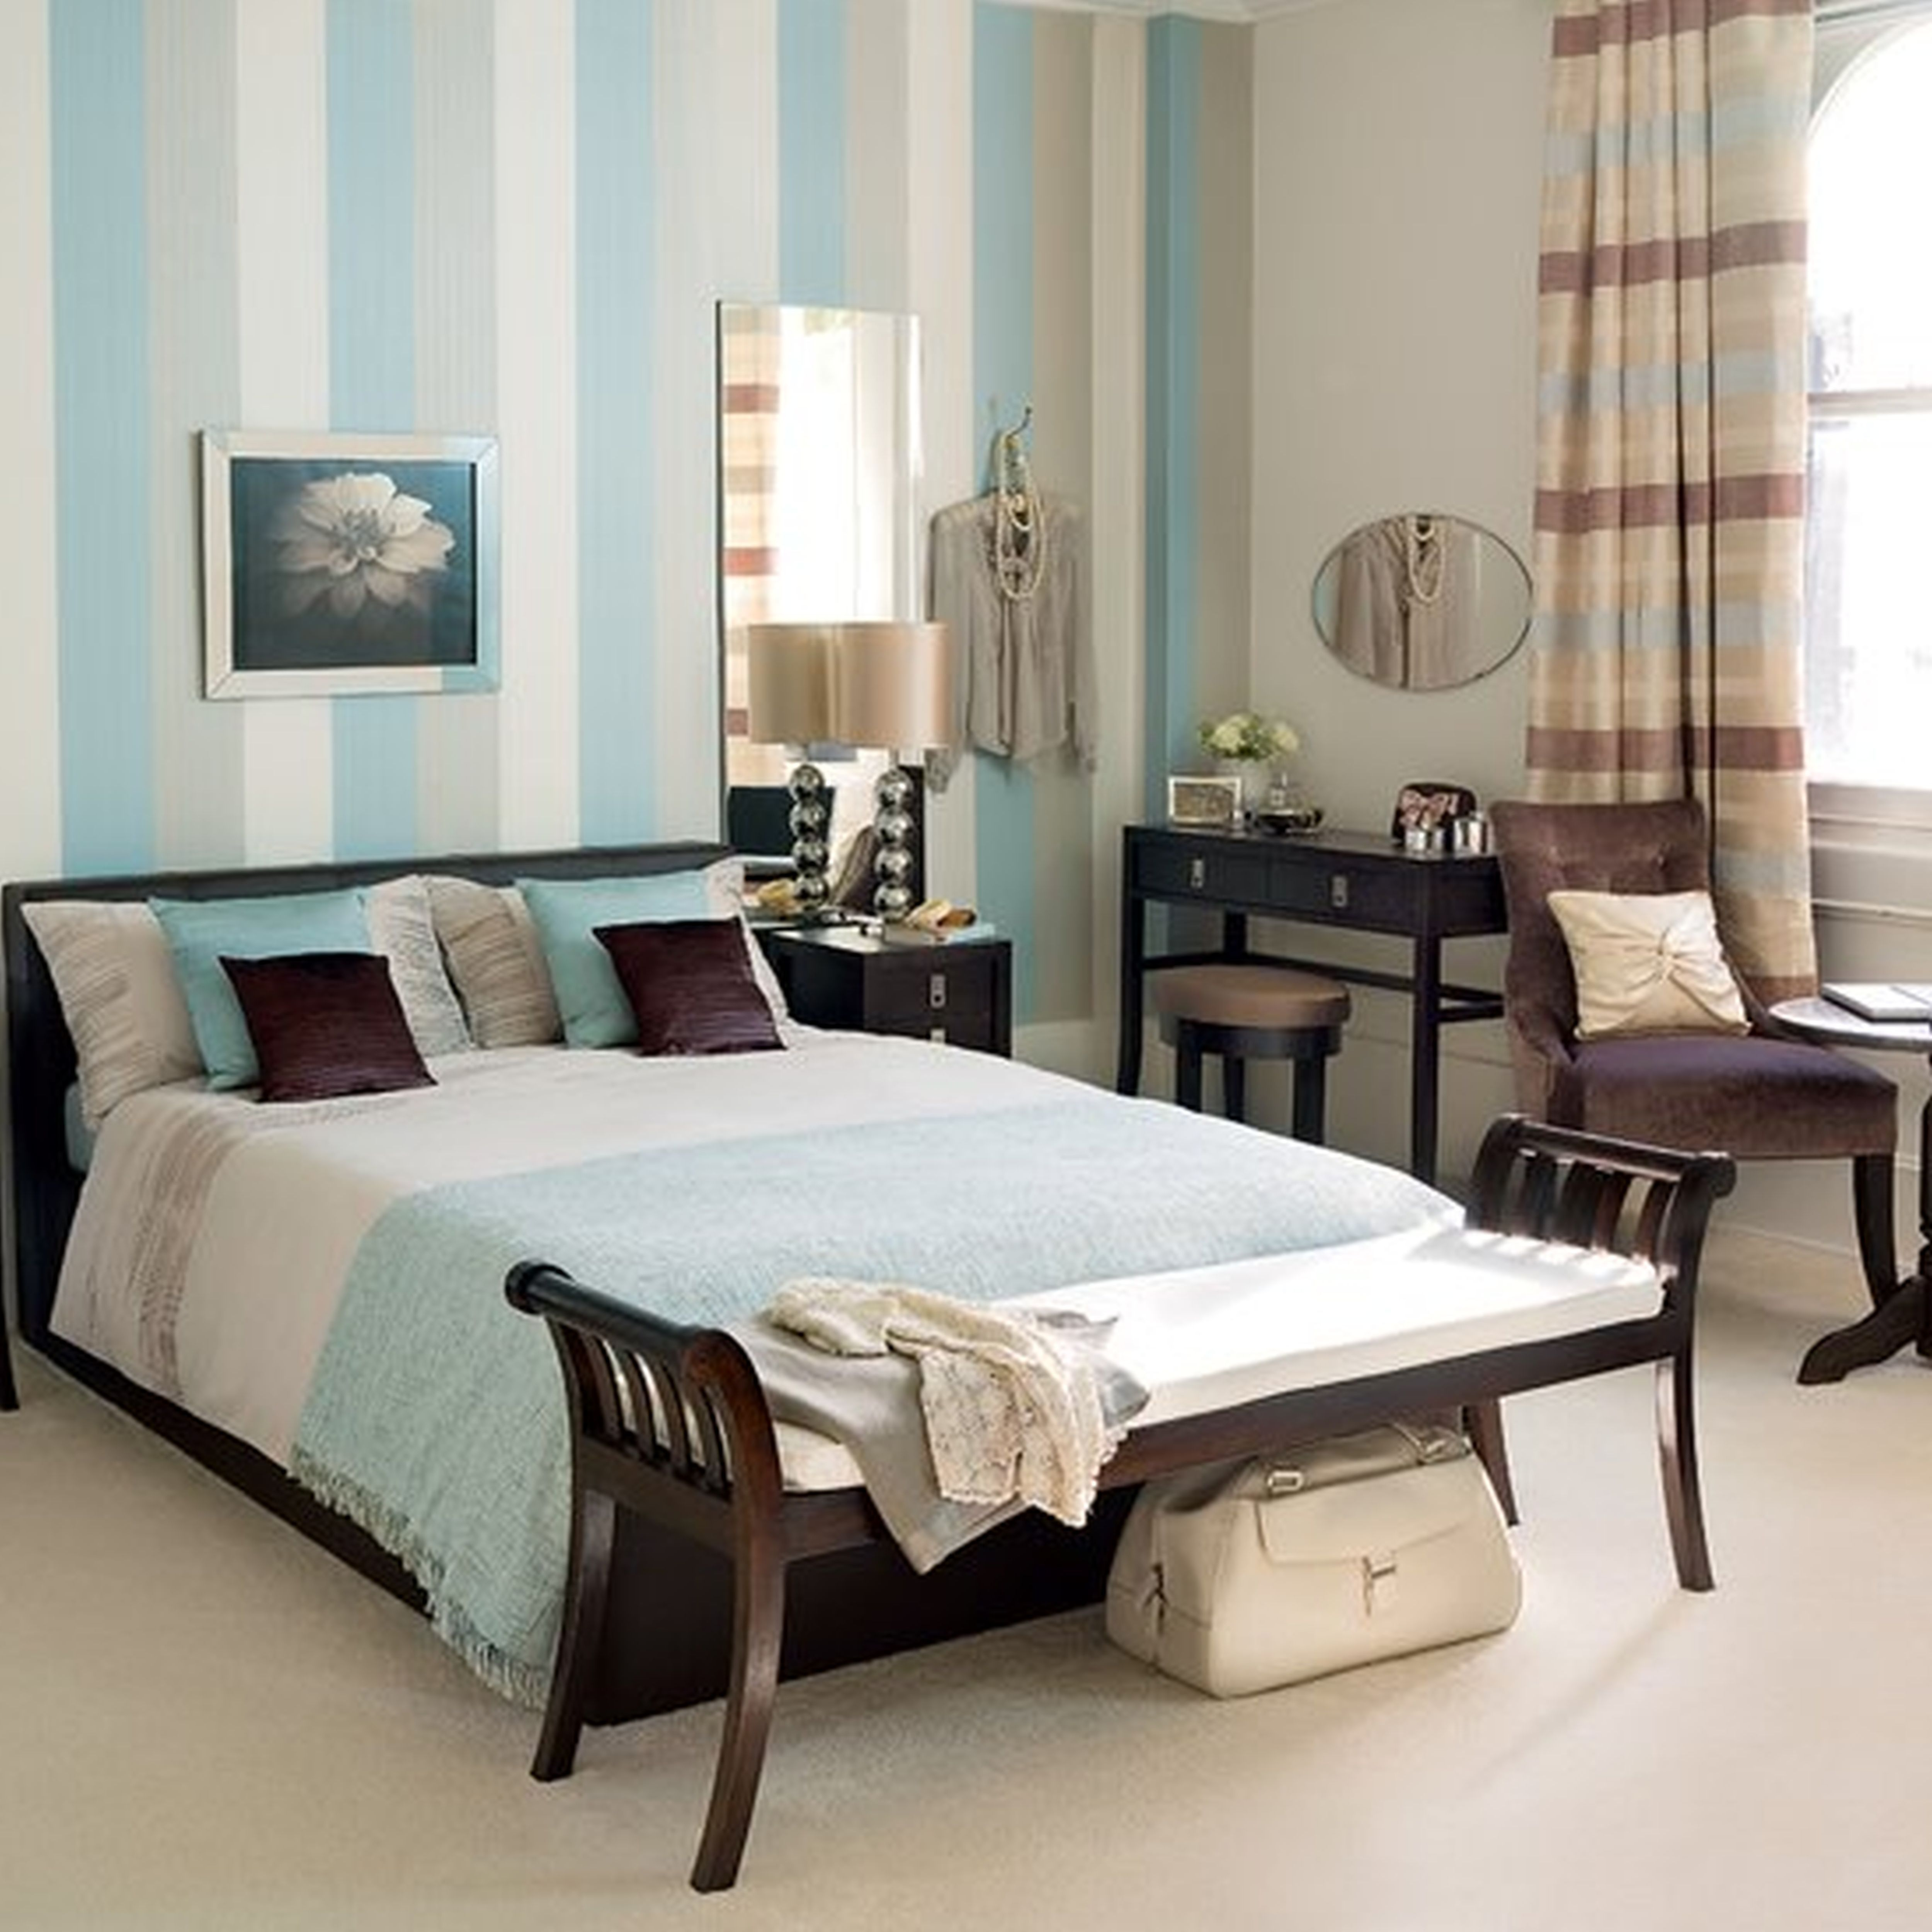 Master bedroom inspiration  Bedroom Inspiration Amazing Wooden Benches And Queen Platform Bed